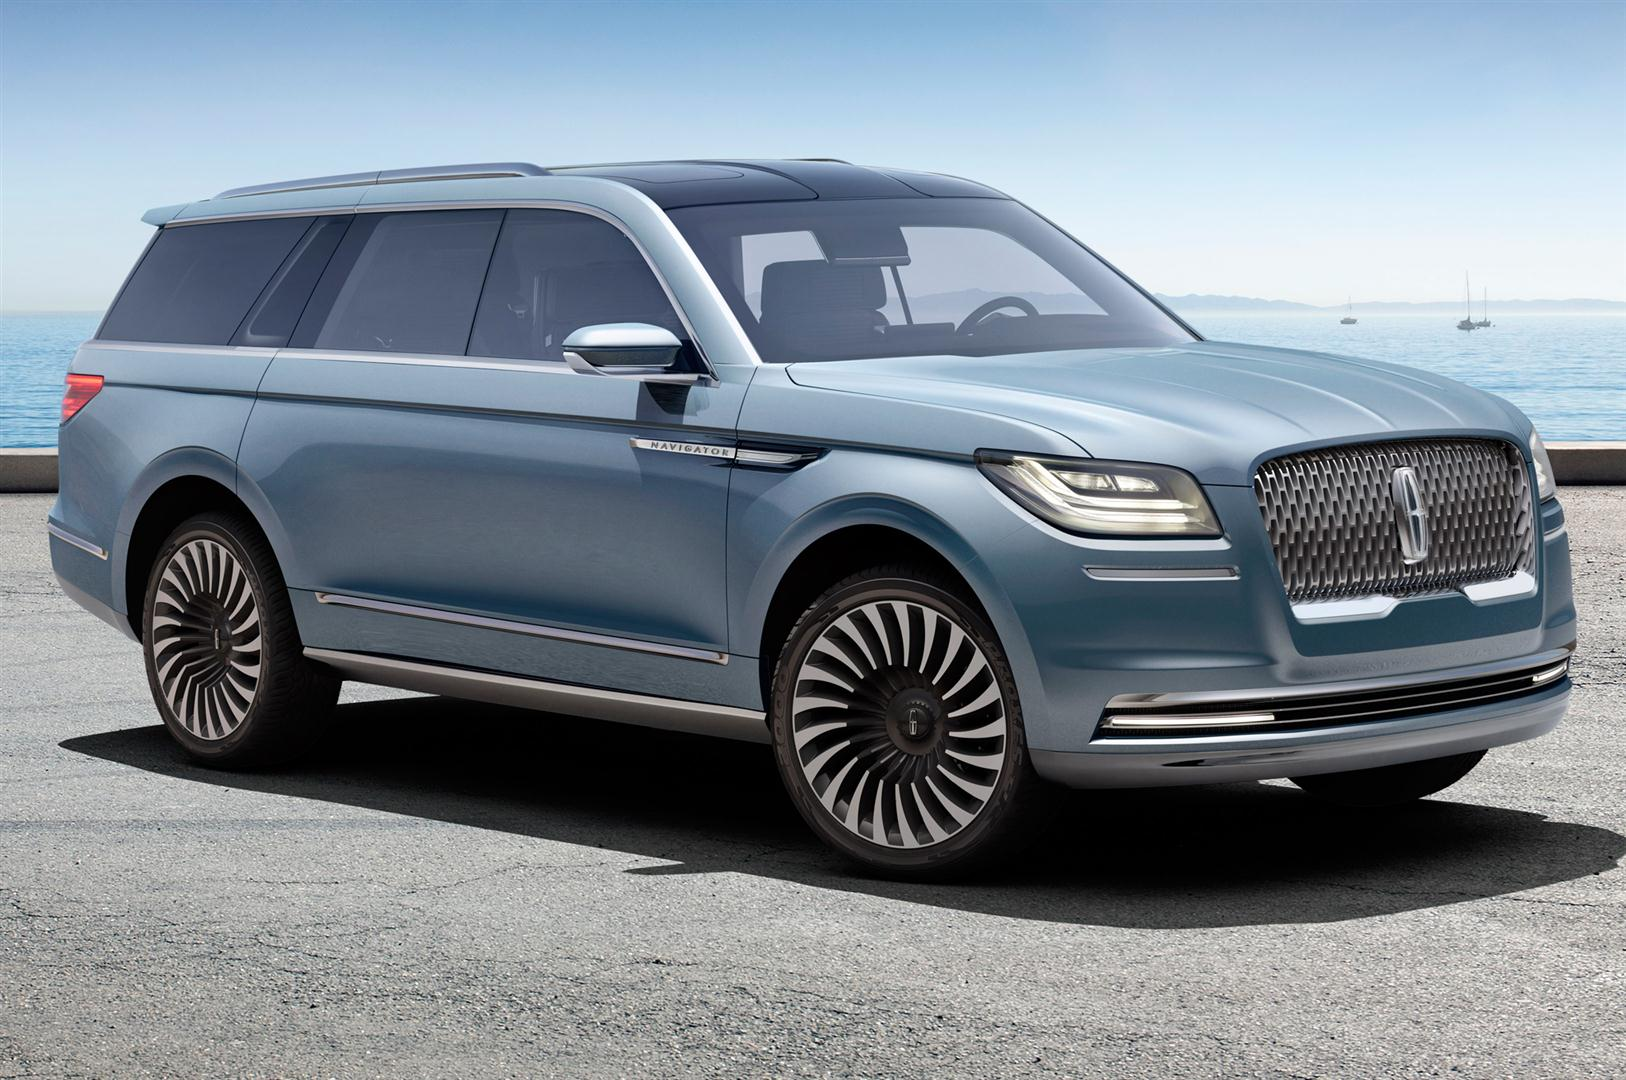 2019 Lincoln Navigator Concept Pictures